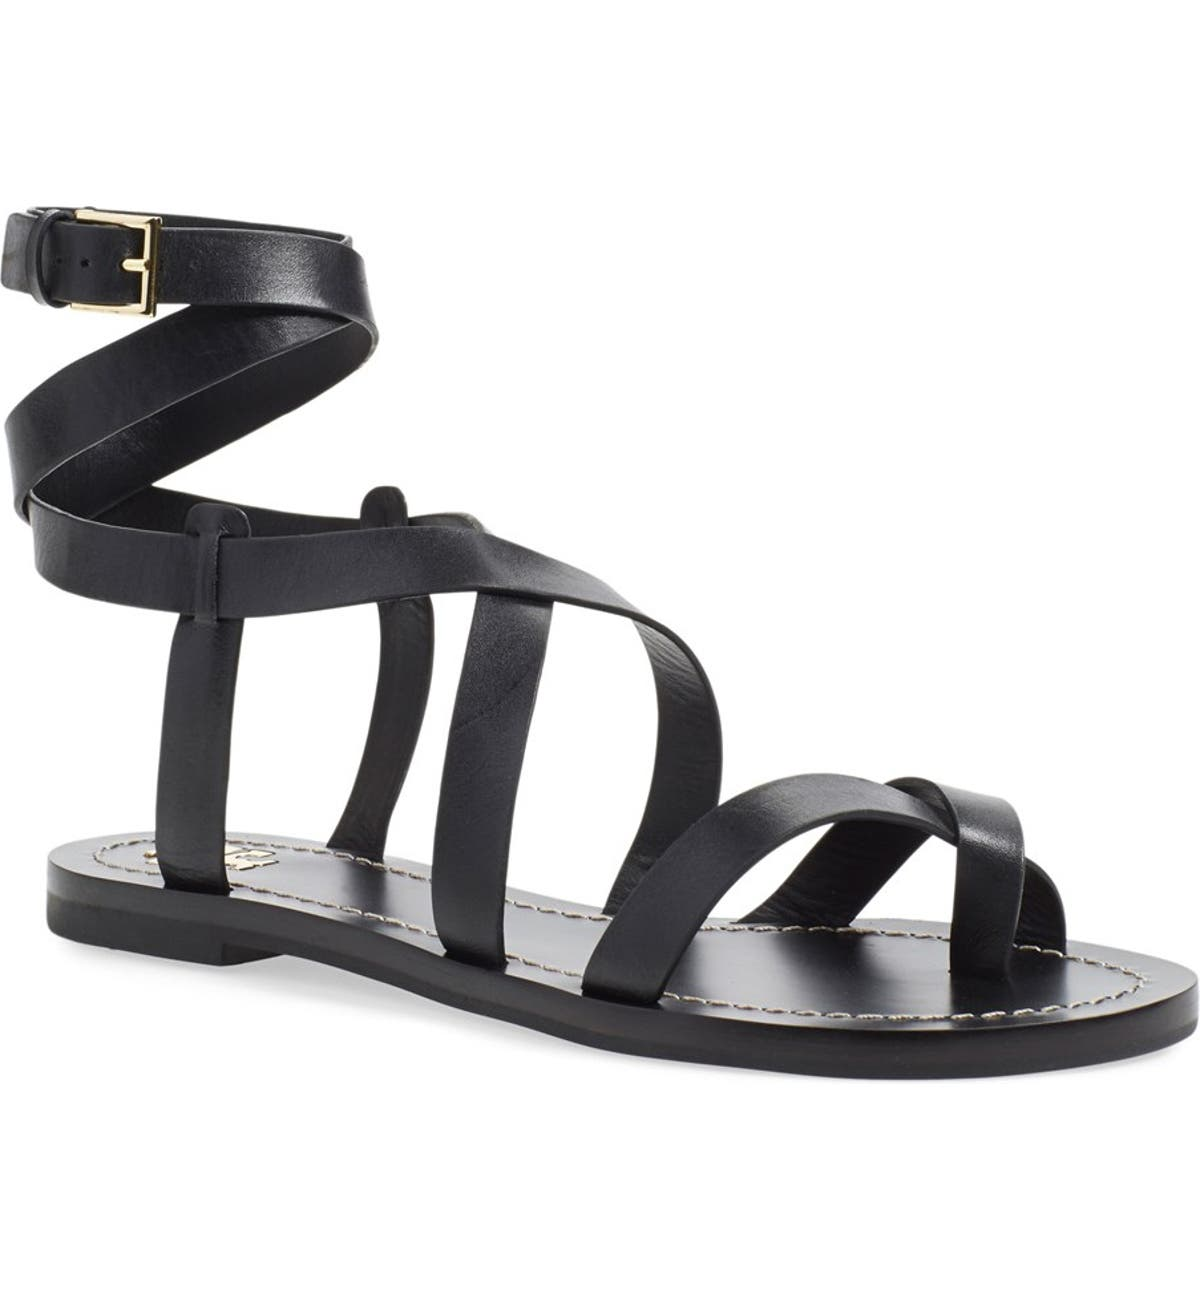 87b11704e2d Tory Burch  Patos  Gladiator Sandal (Women)